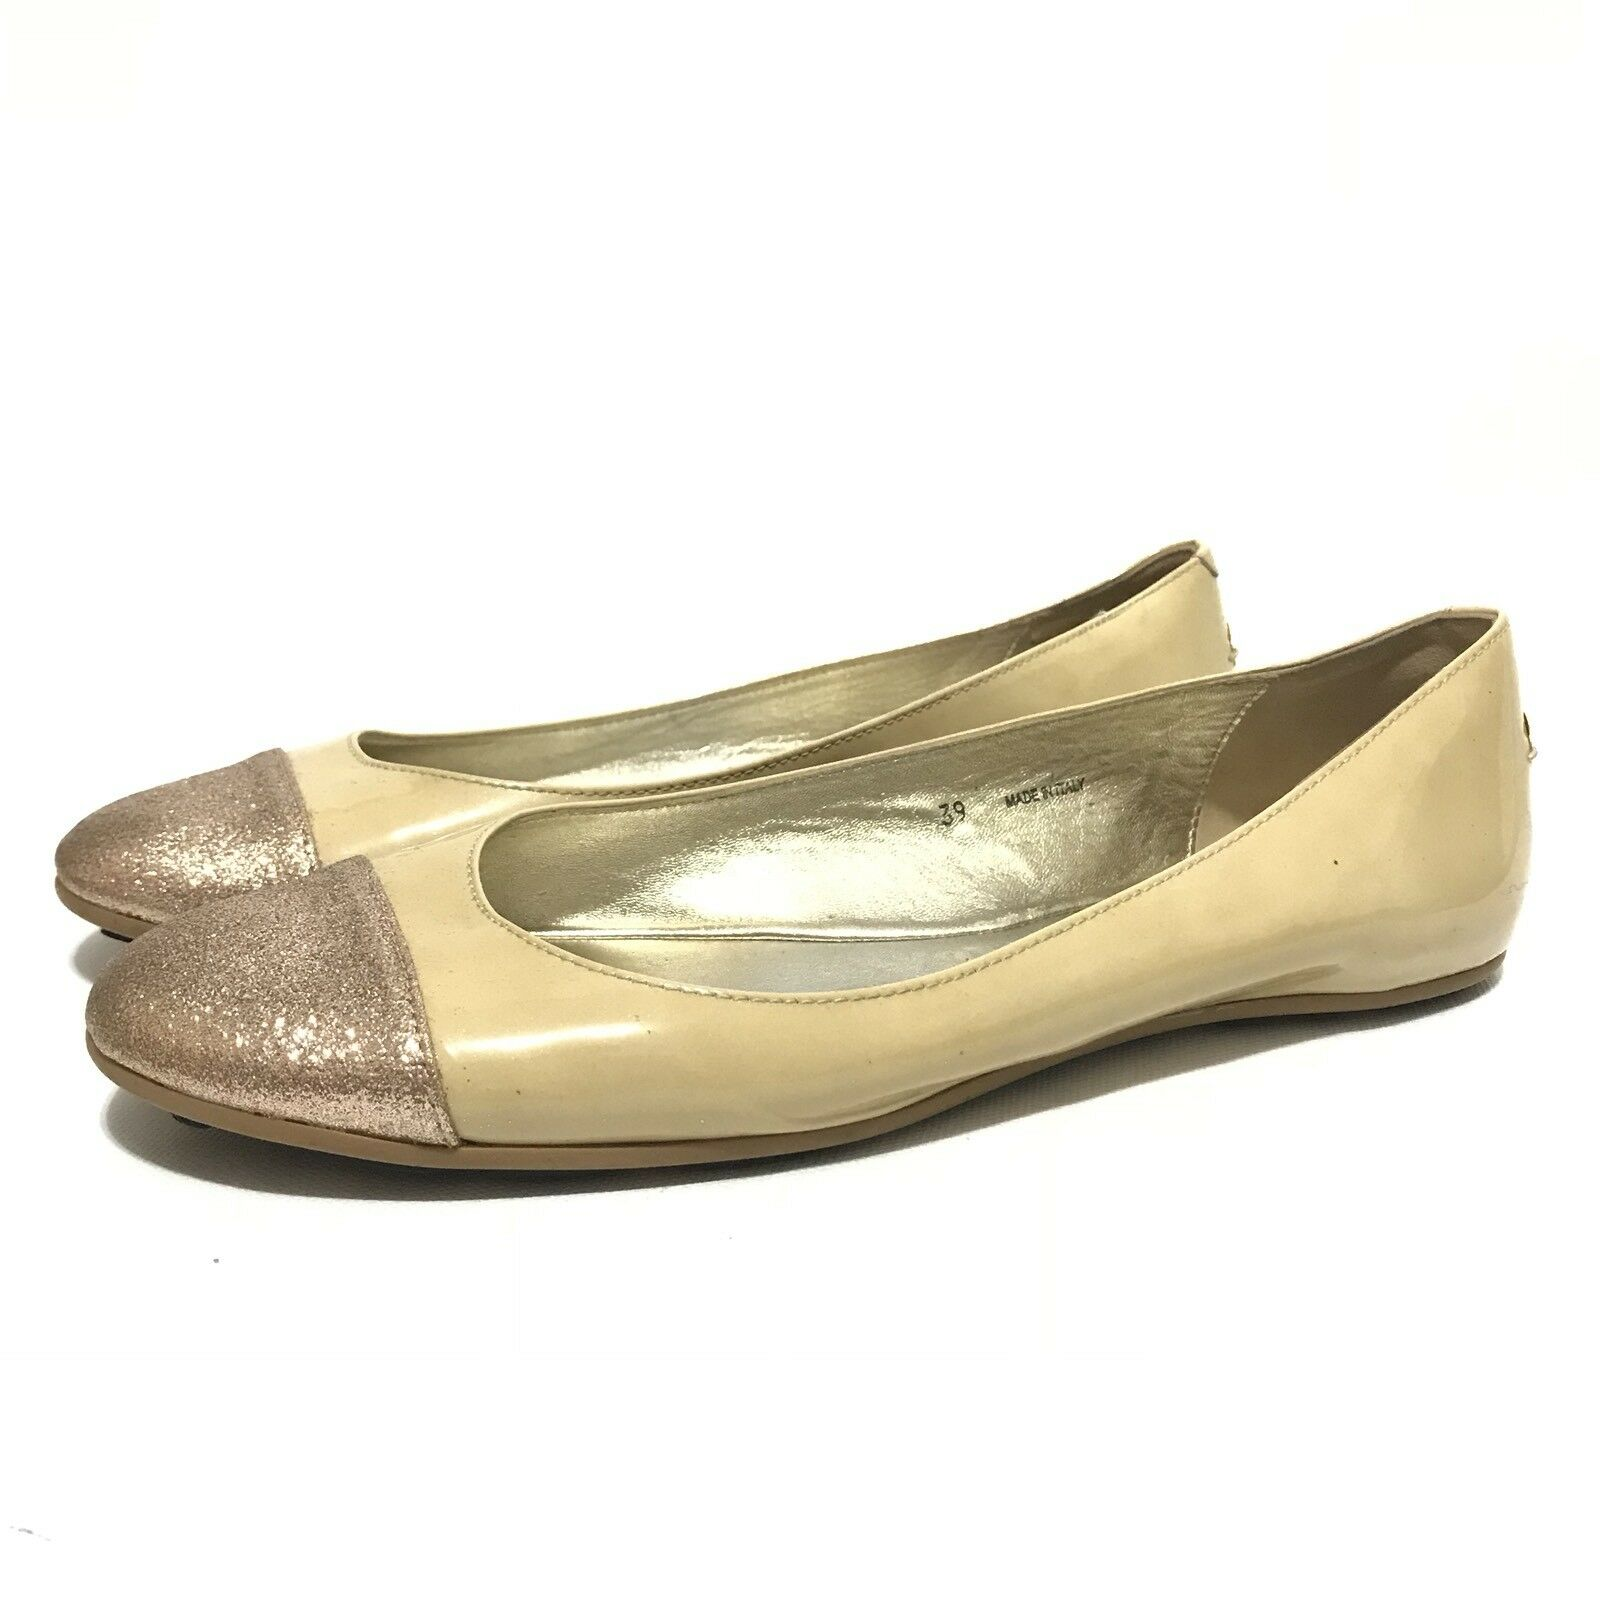 Jimmy Choo Flats Größe 39 Ballet Round Rubber Sole Walking Office Wear Light Toe